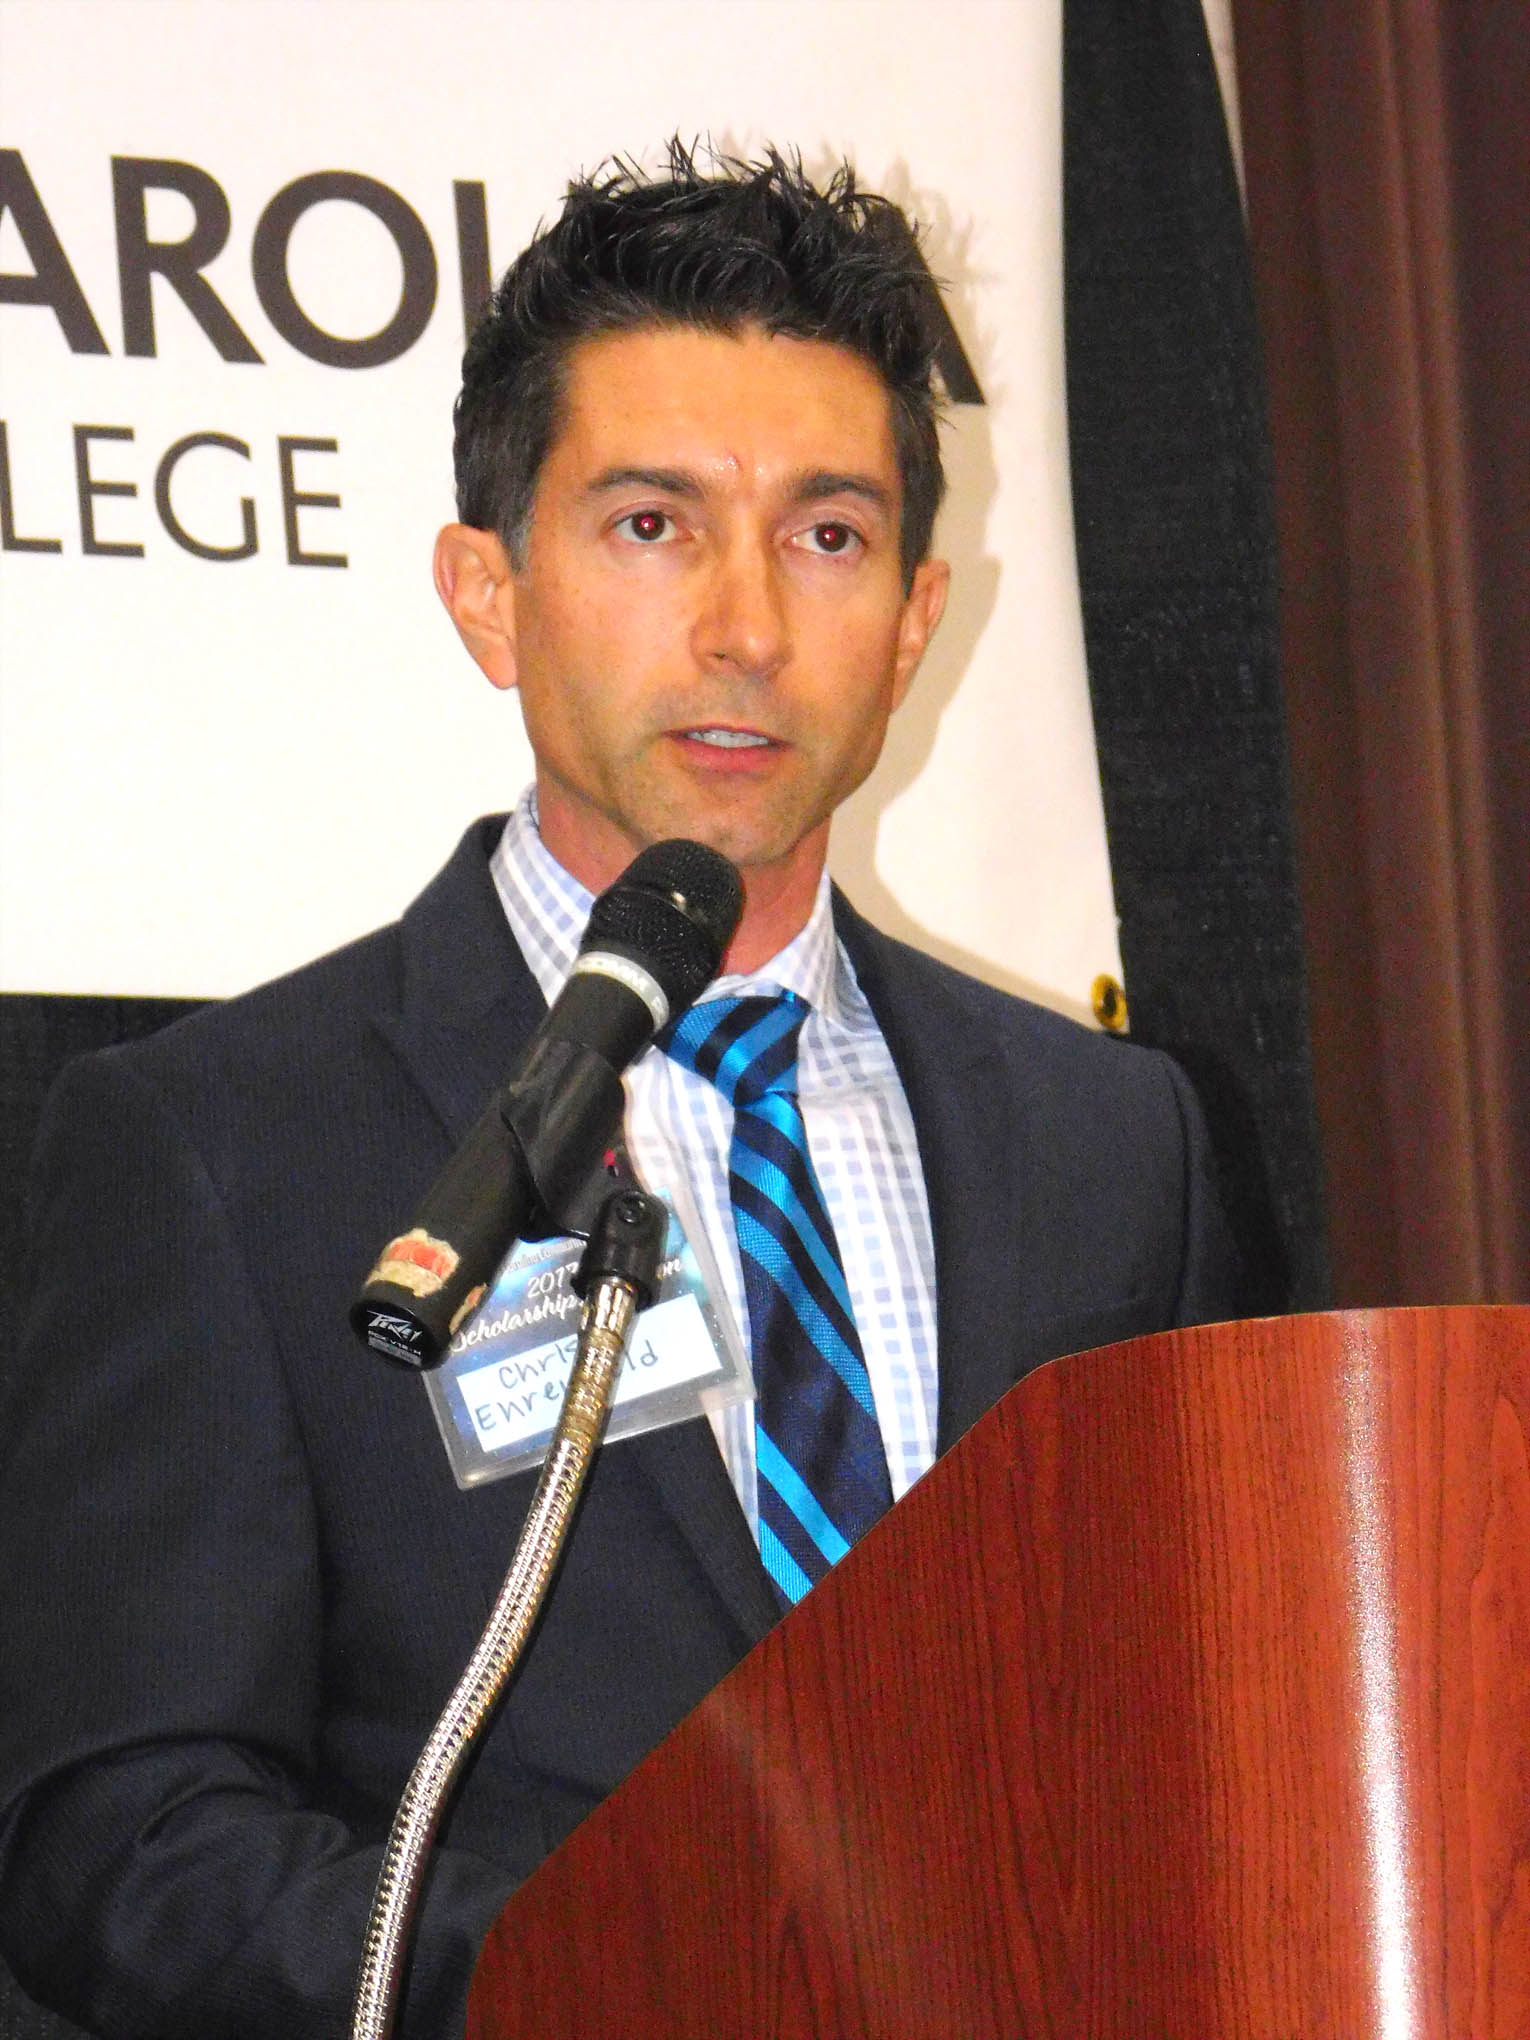 Click to enlarge,  Chris Ehrenfeld, CCCC Foundation President, provided welcoming remarks during Central Carolina Community College's Scholarship Luncheon on Wednesday, Nov. 15, at the Dennis A. Wicker Civic Center.